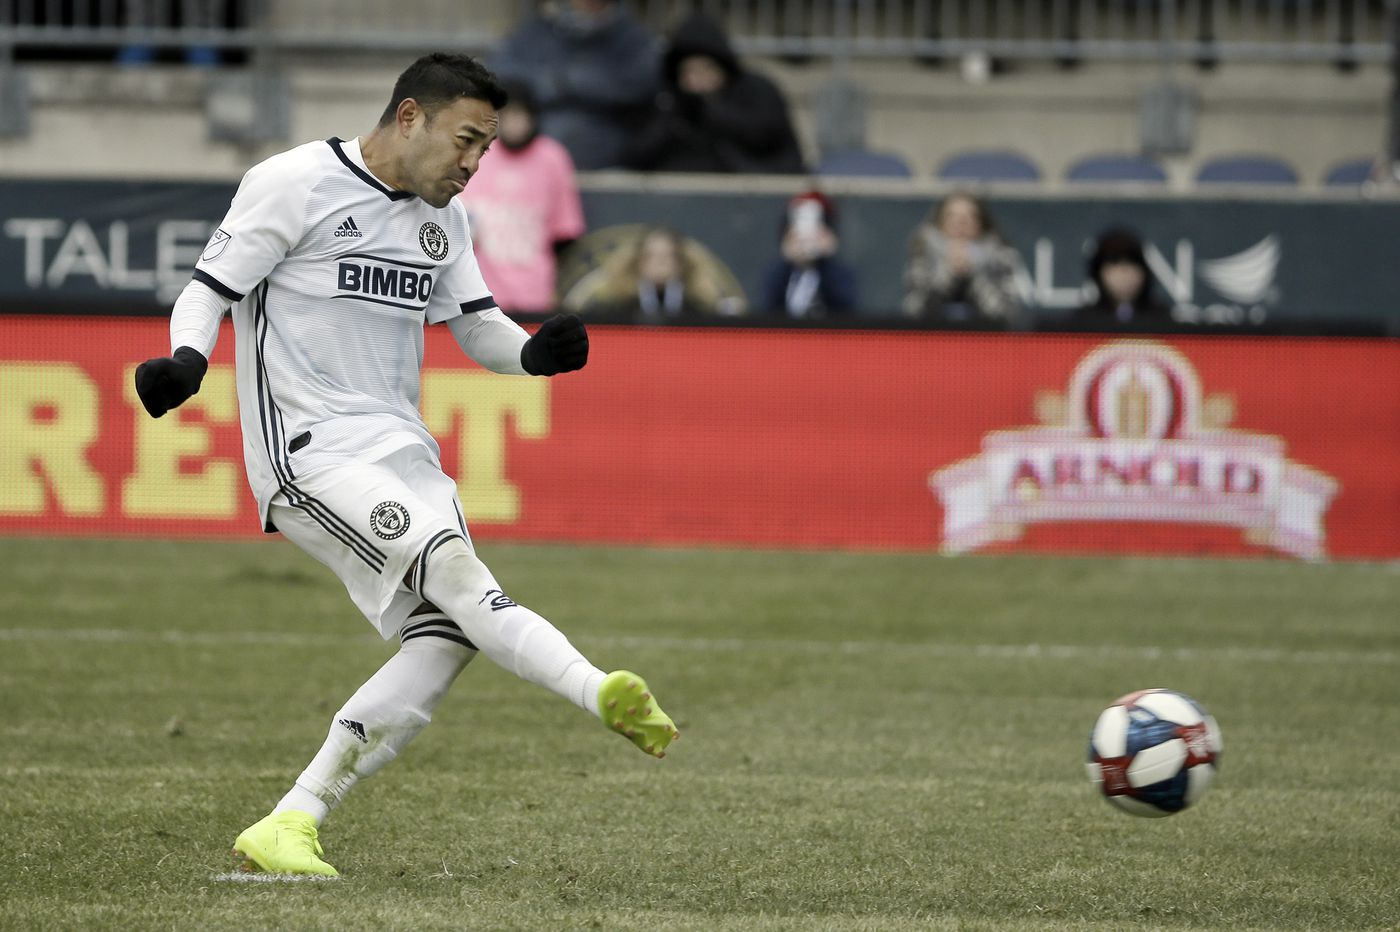 Union's Marco Fabián comes back from suspension with a point to prove